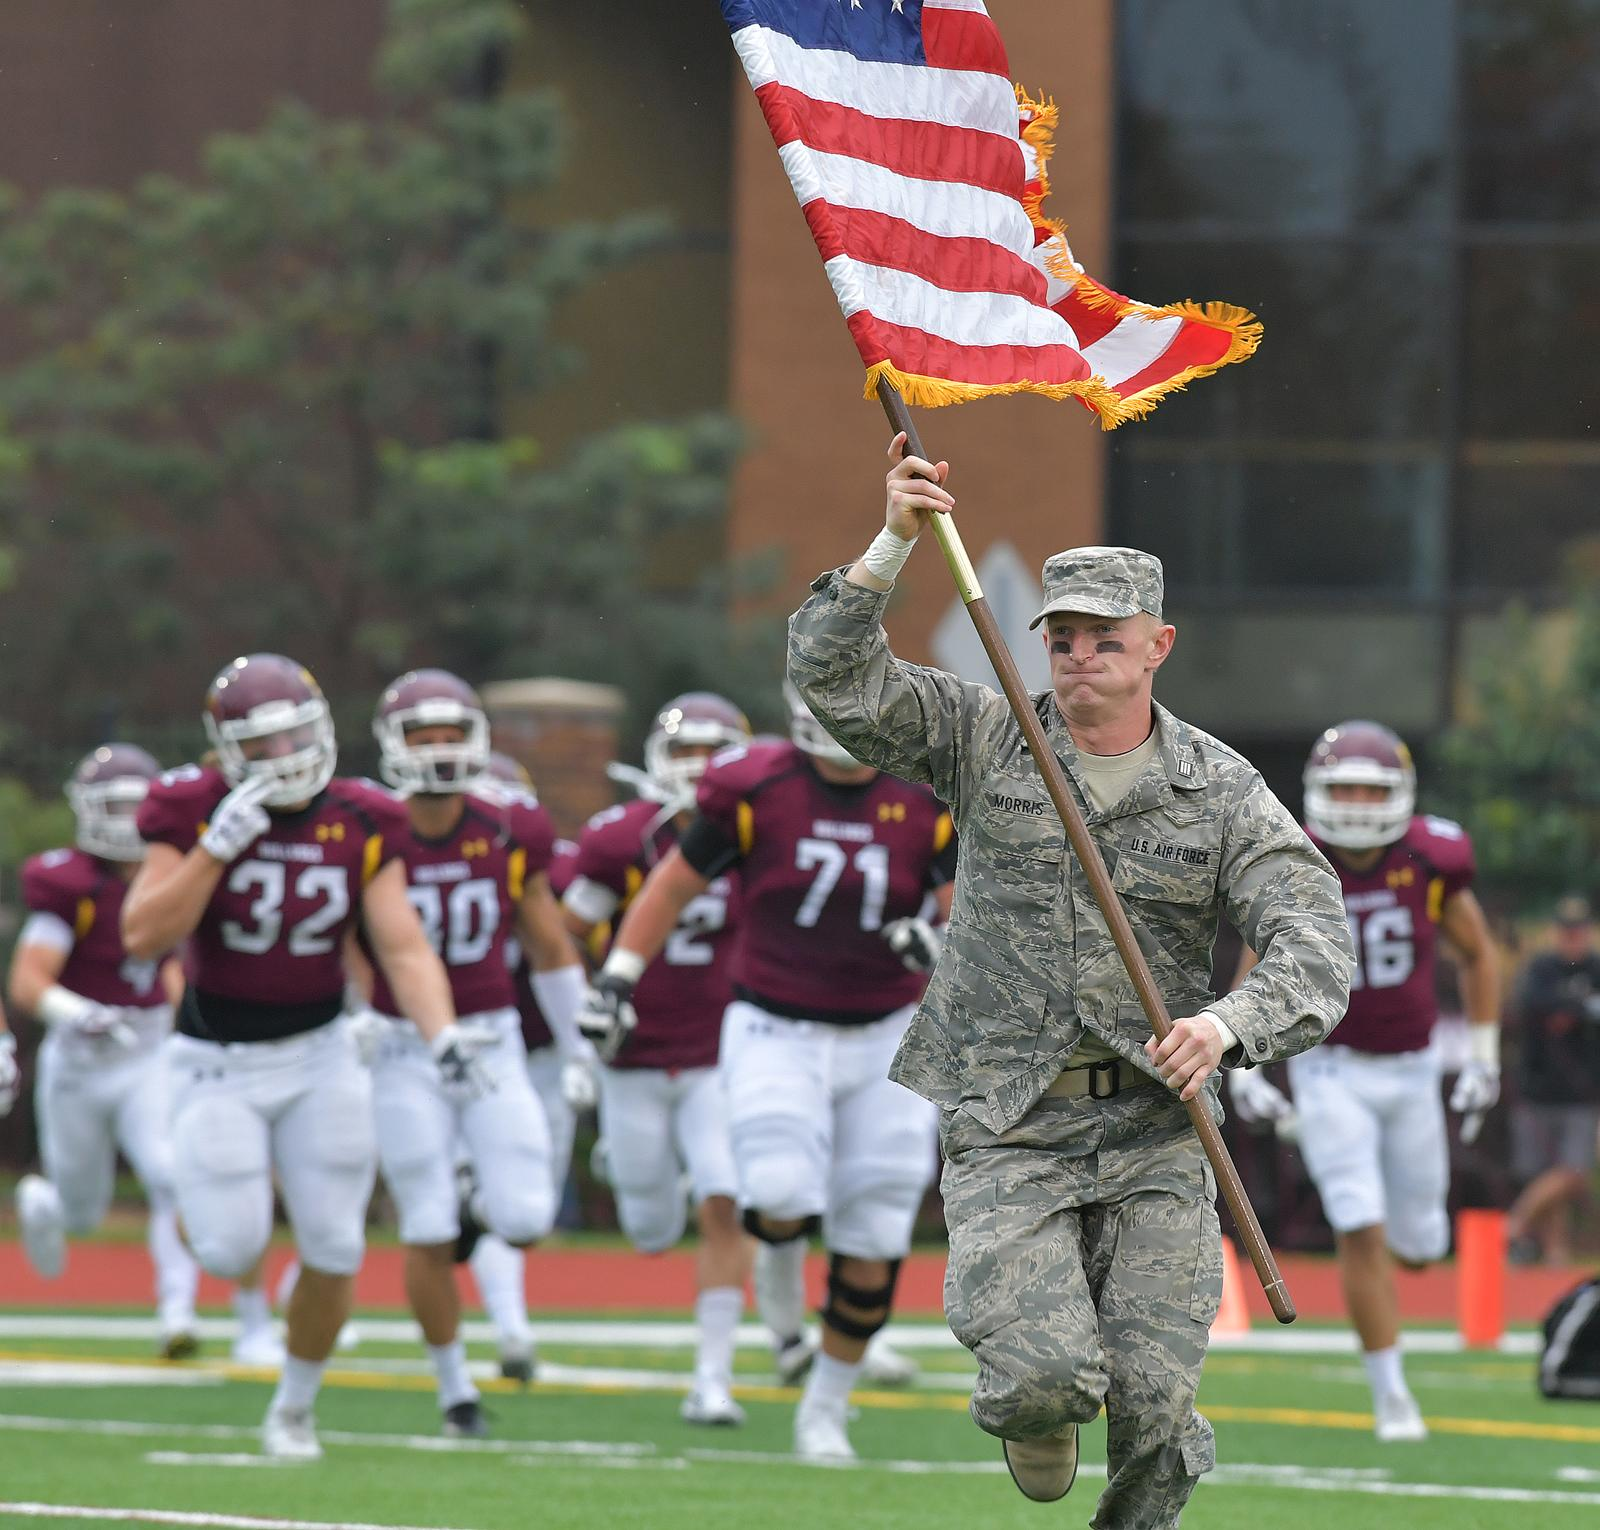 umd football promotional schedule includes annual military